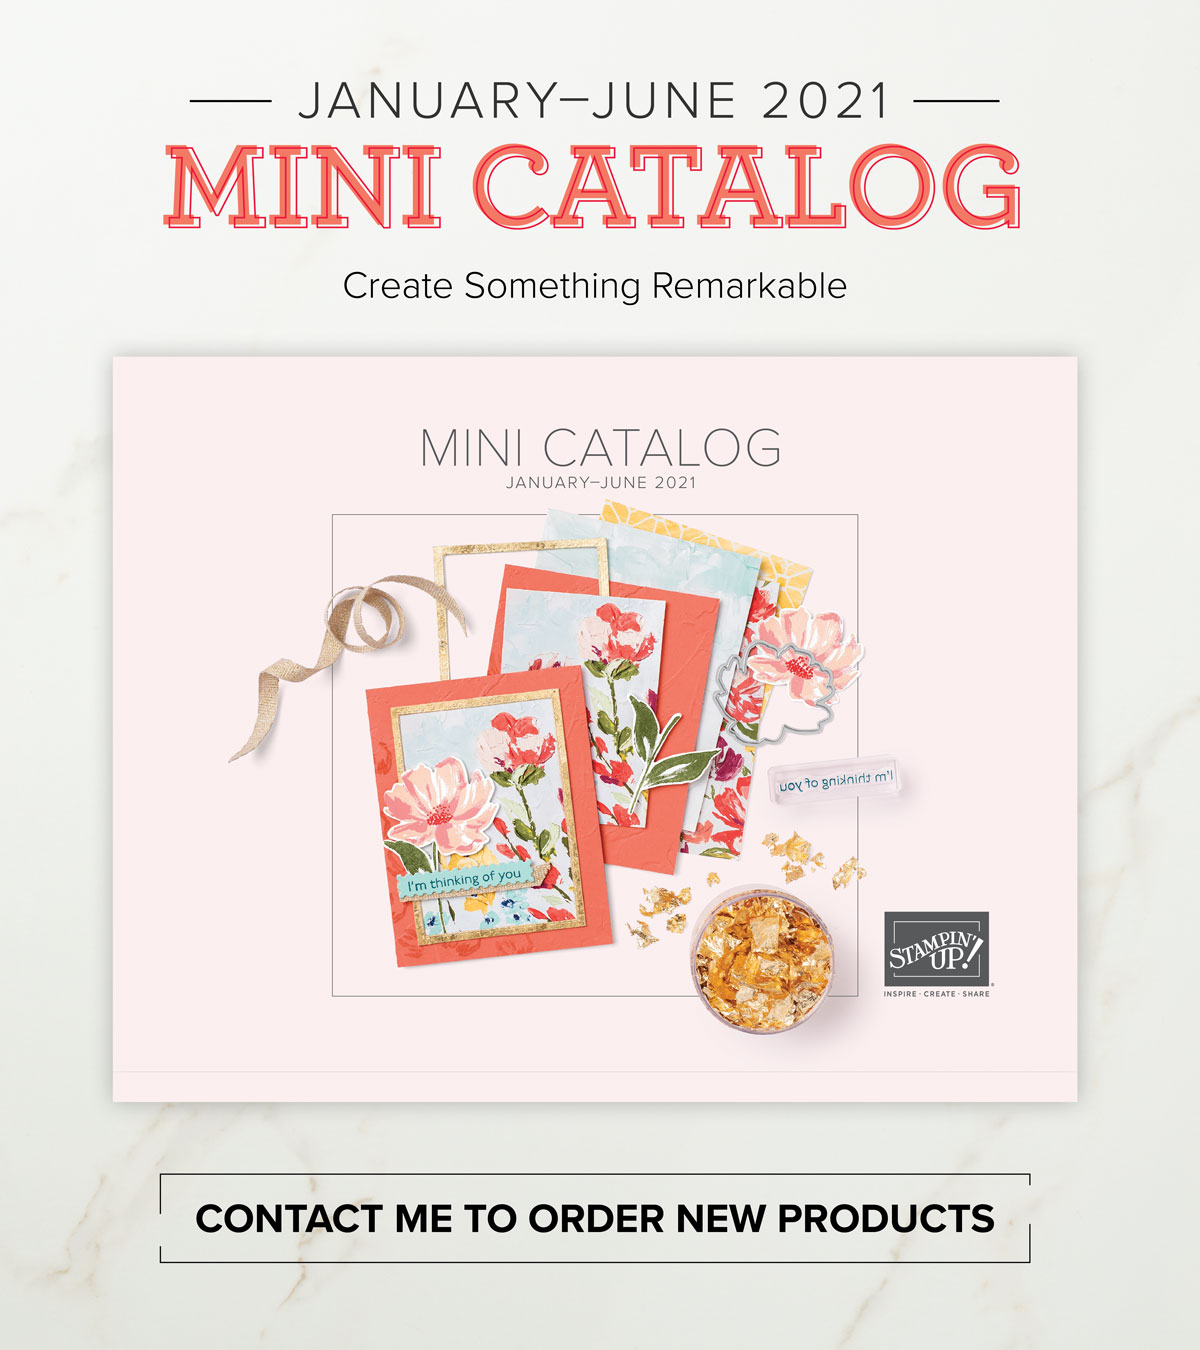 Mini Catalog 2020 January to June